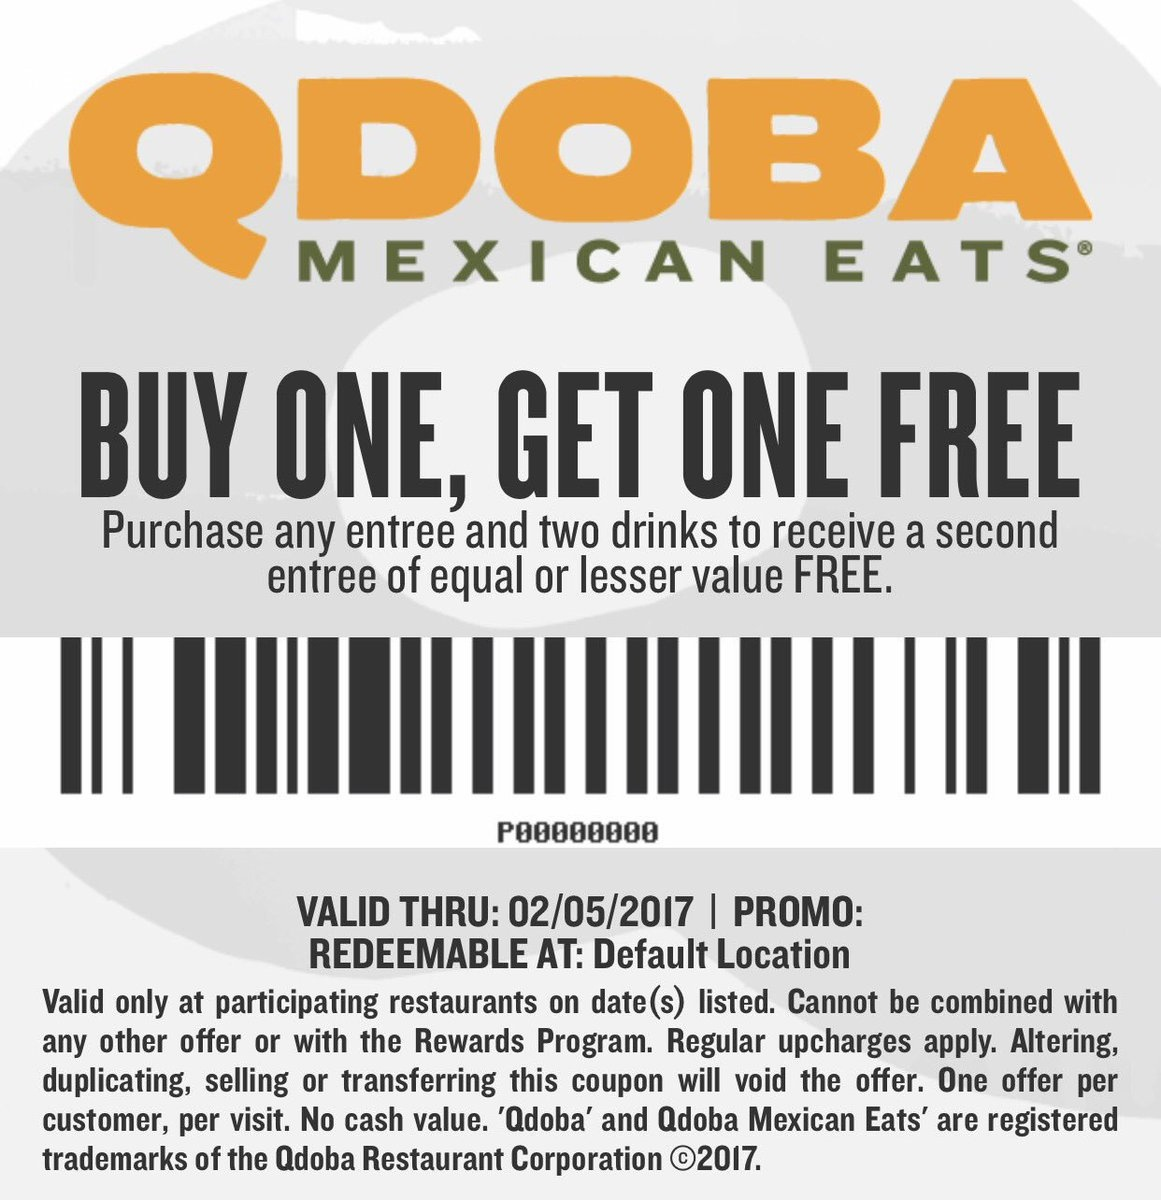 Qdoba Online Coupons | Printable Coupons Online - Bogo Free Coupons Printable